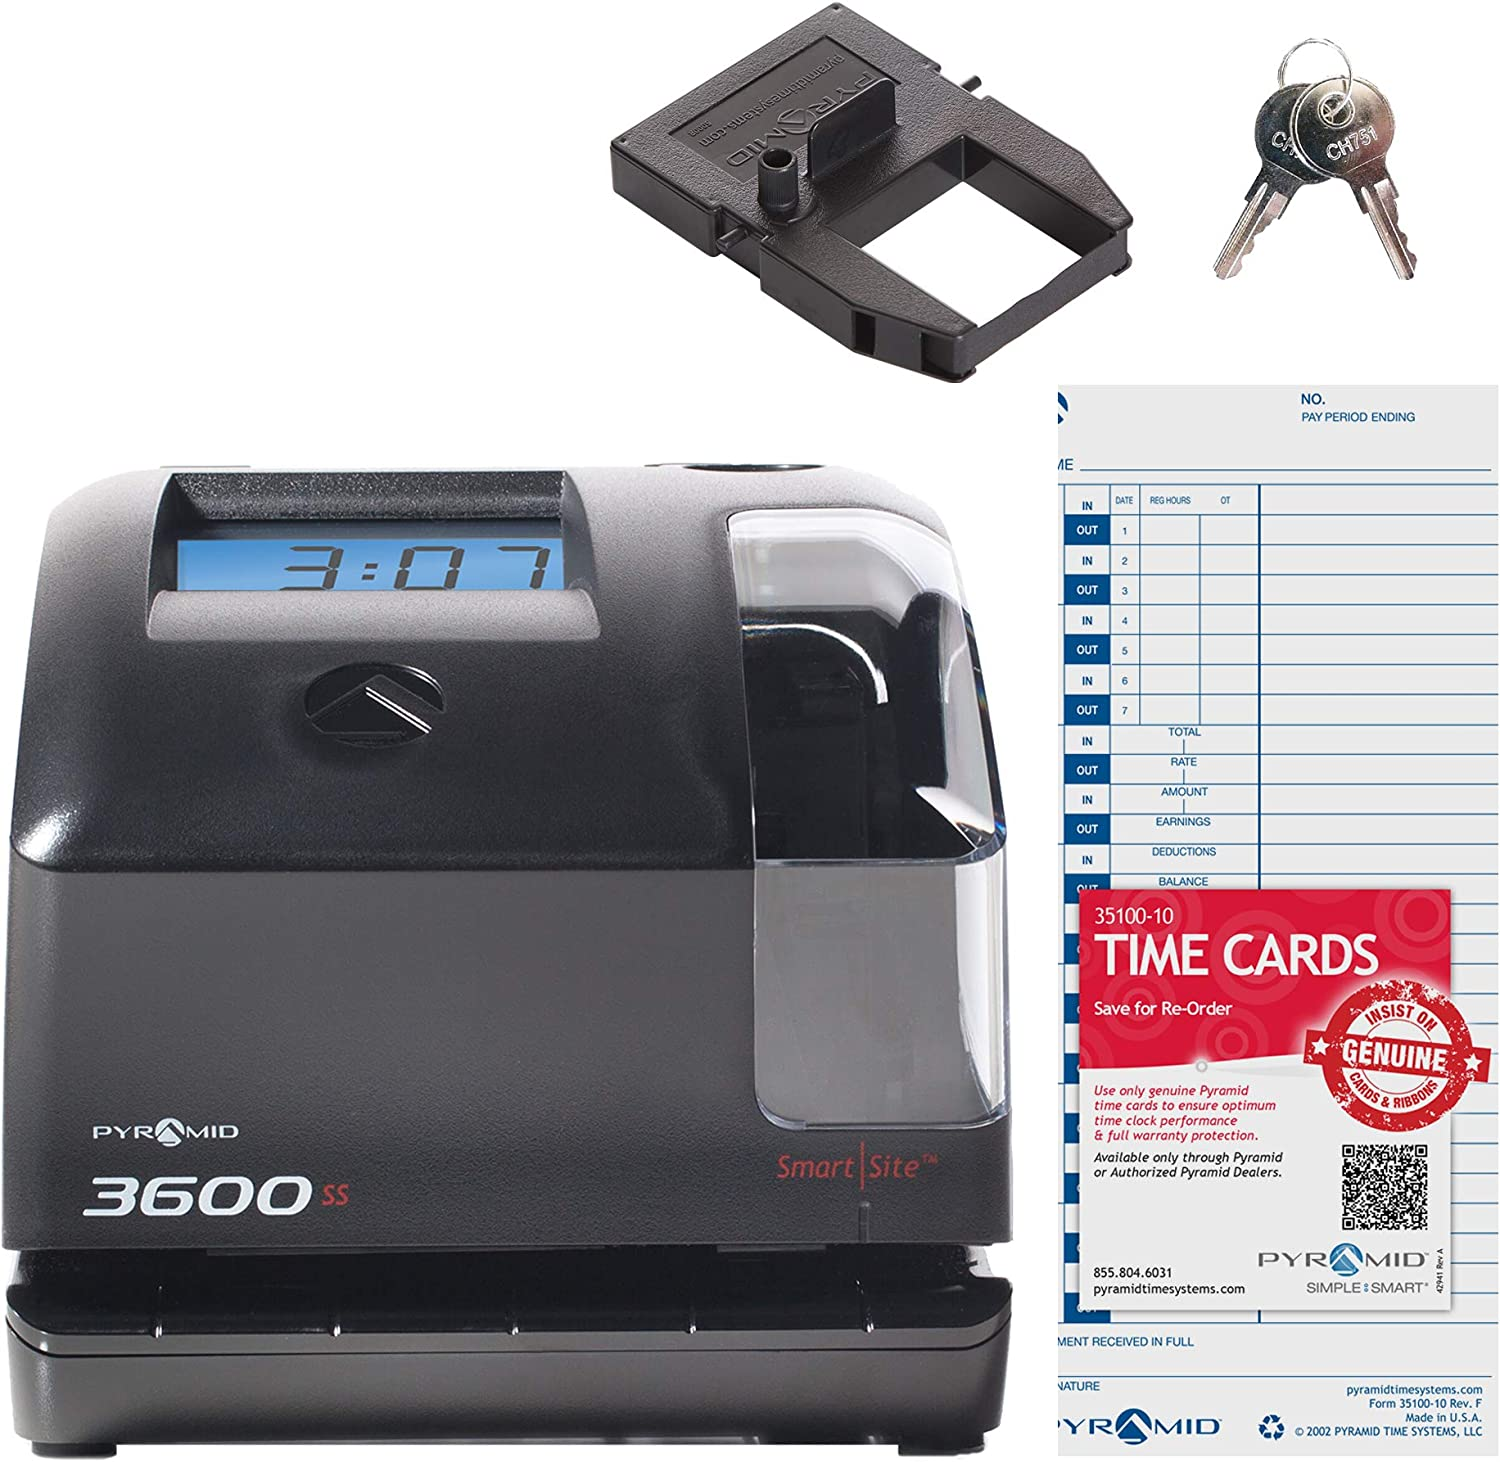 Pyramid 3600ss SmartSite Time Clock and Document Stamp - Made in USA